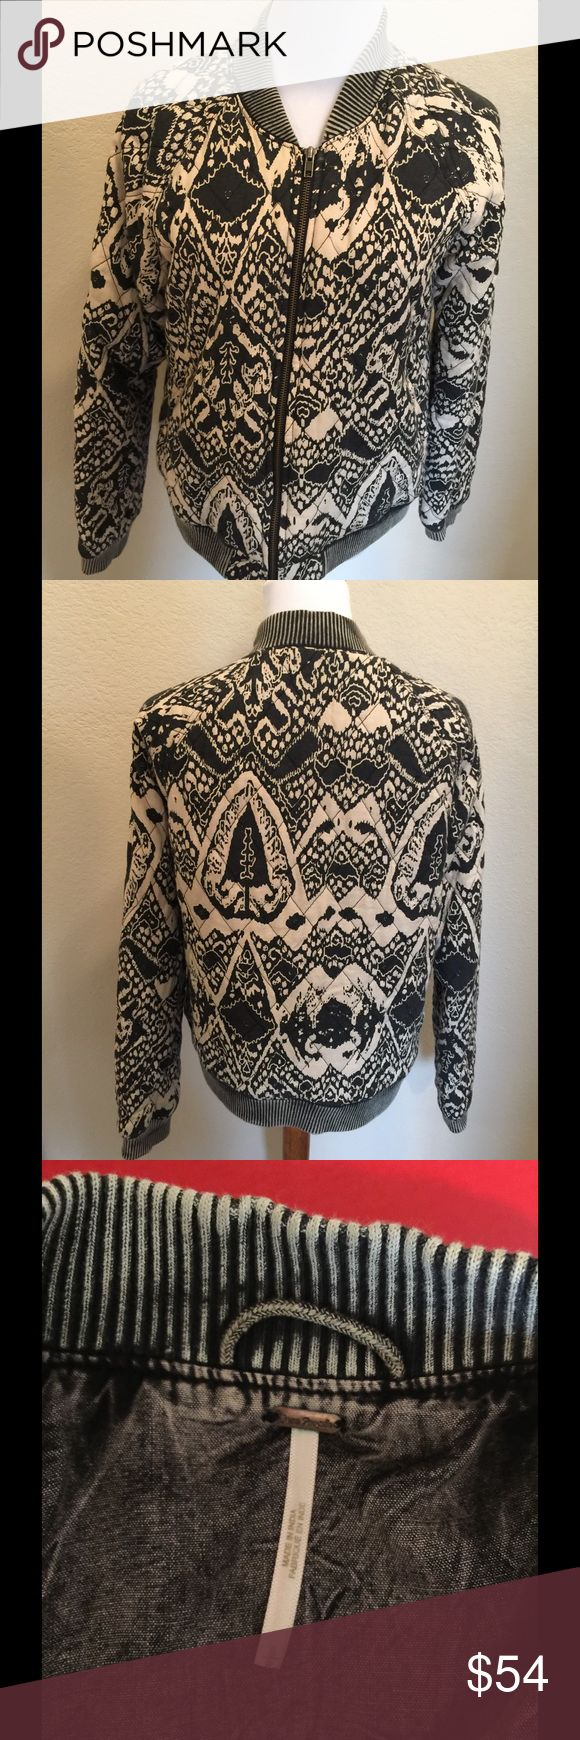 Free people zip black/cream jacket S Cute jacket by free people  100% rayon  Size S Quilted jacket Free People Jackets & Coats